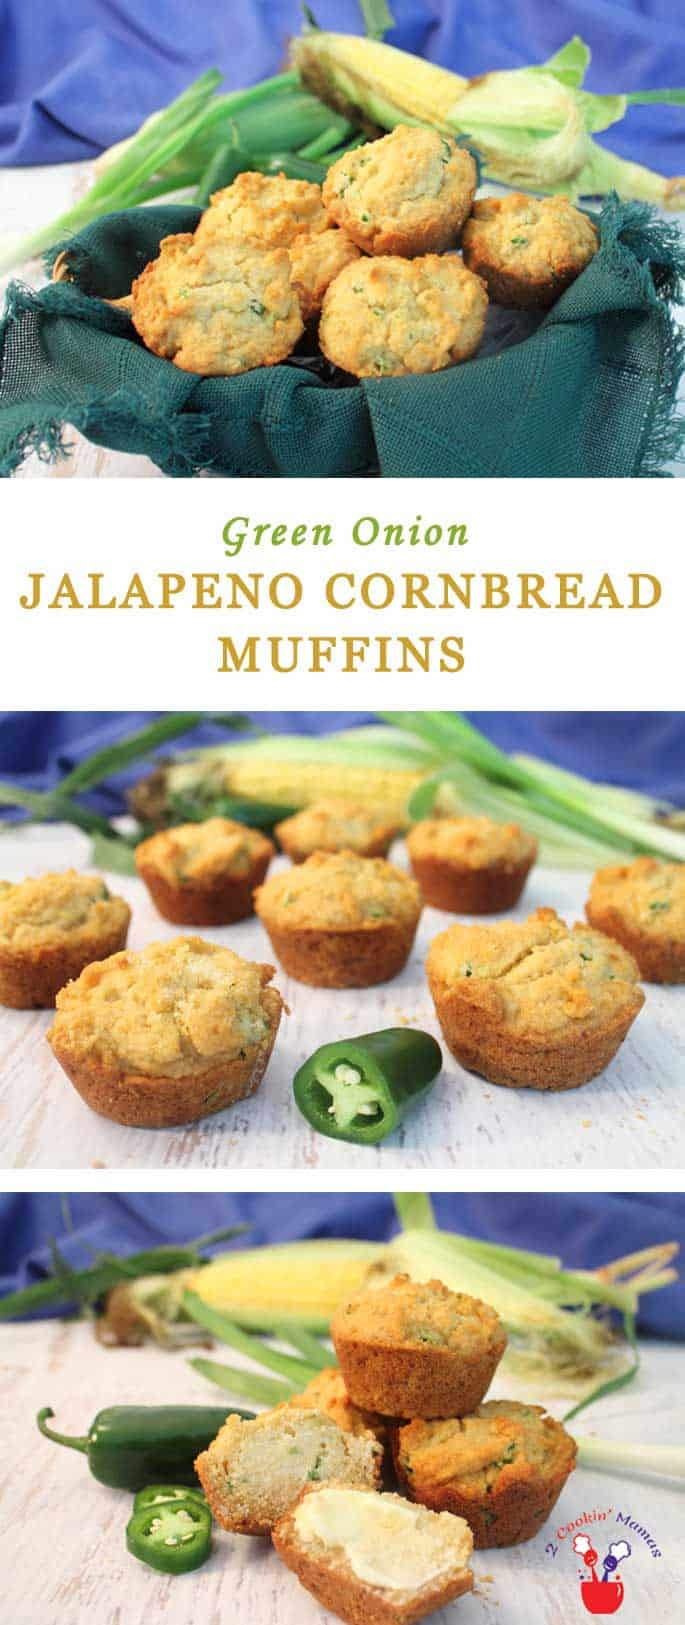 Green Onion Jalapeno Cornbread Muffins | 2 Cookin Mamas Green Onion Jalapeno Cornbread Muffins will add a little zing to your meal without being too spicy. The addition of buttermilk & honey makes them moist, delicious & balances out the heat perfectly. #recipe